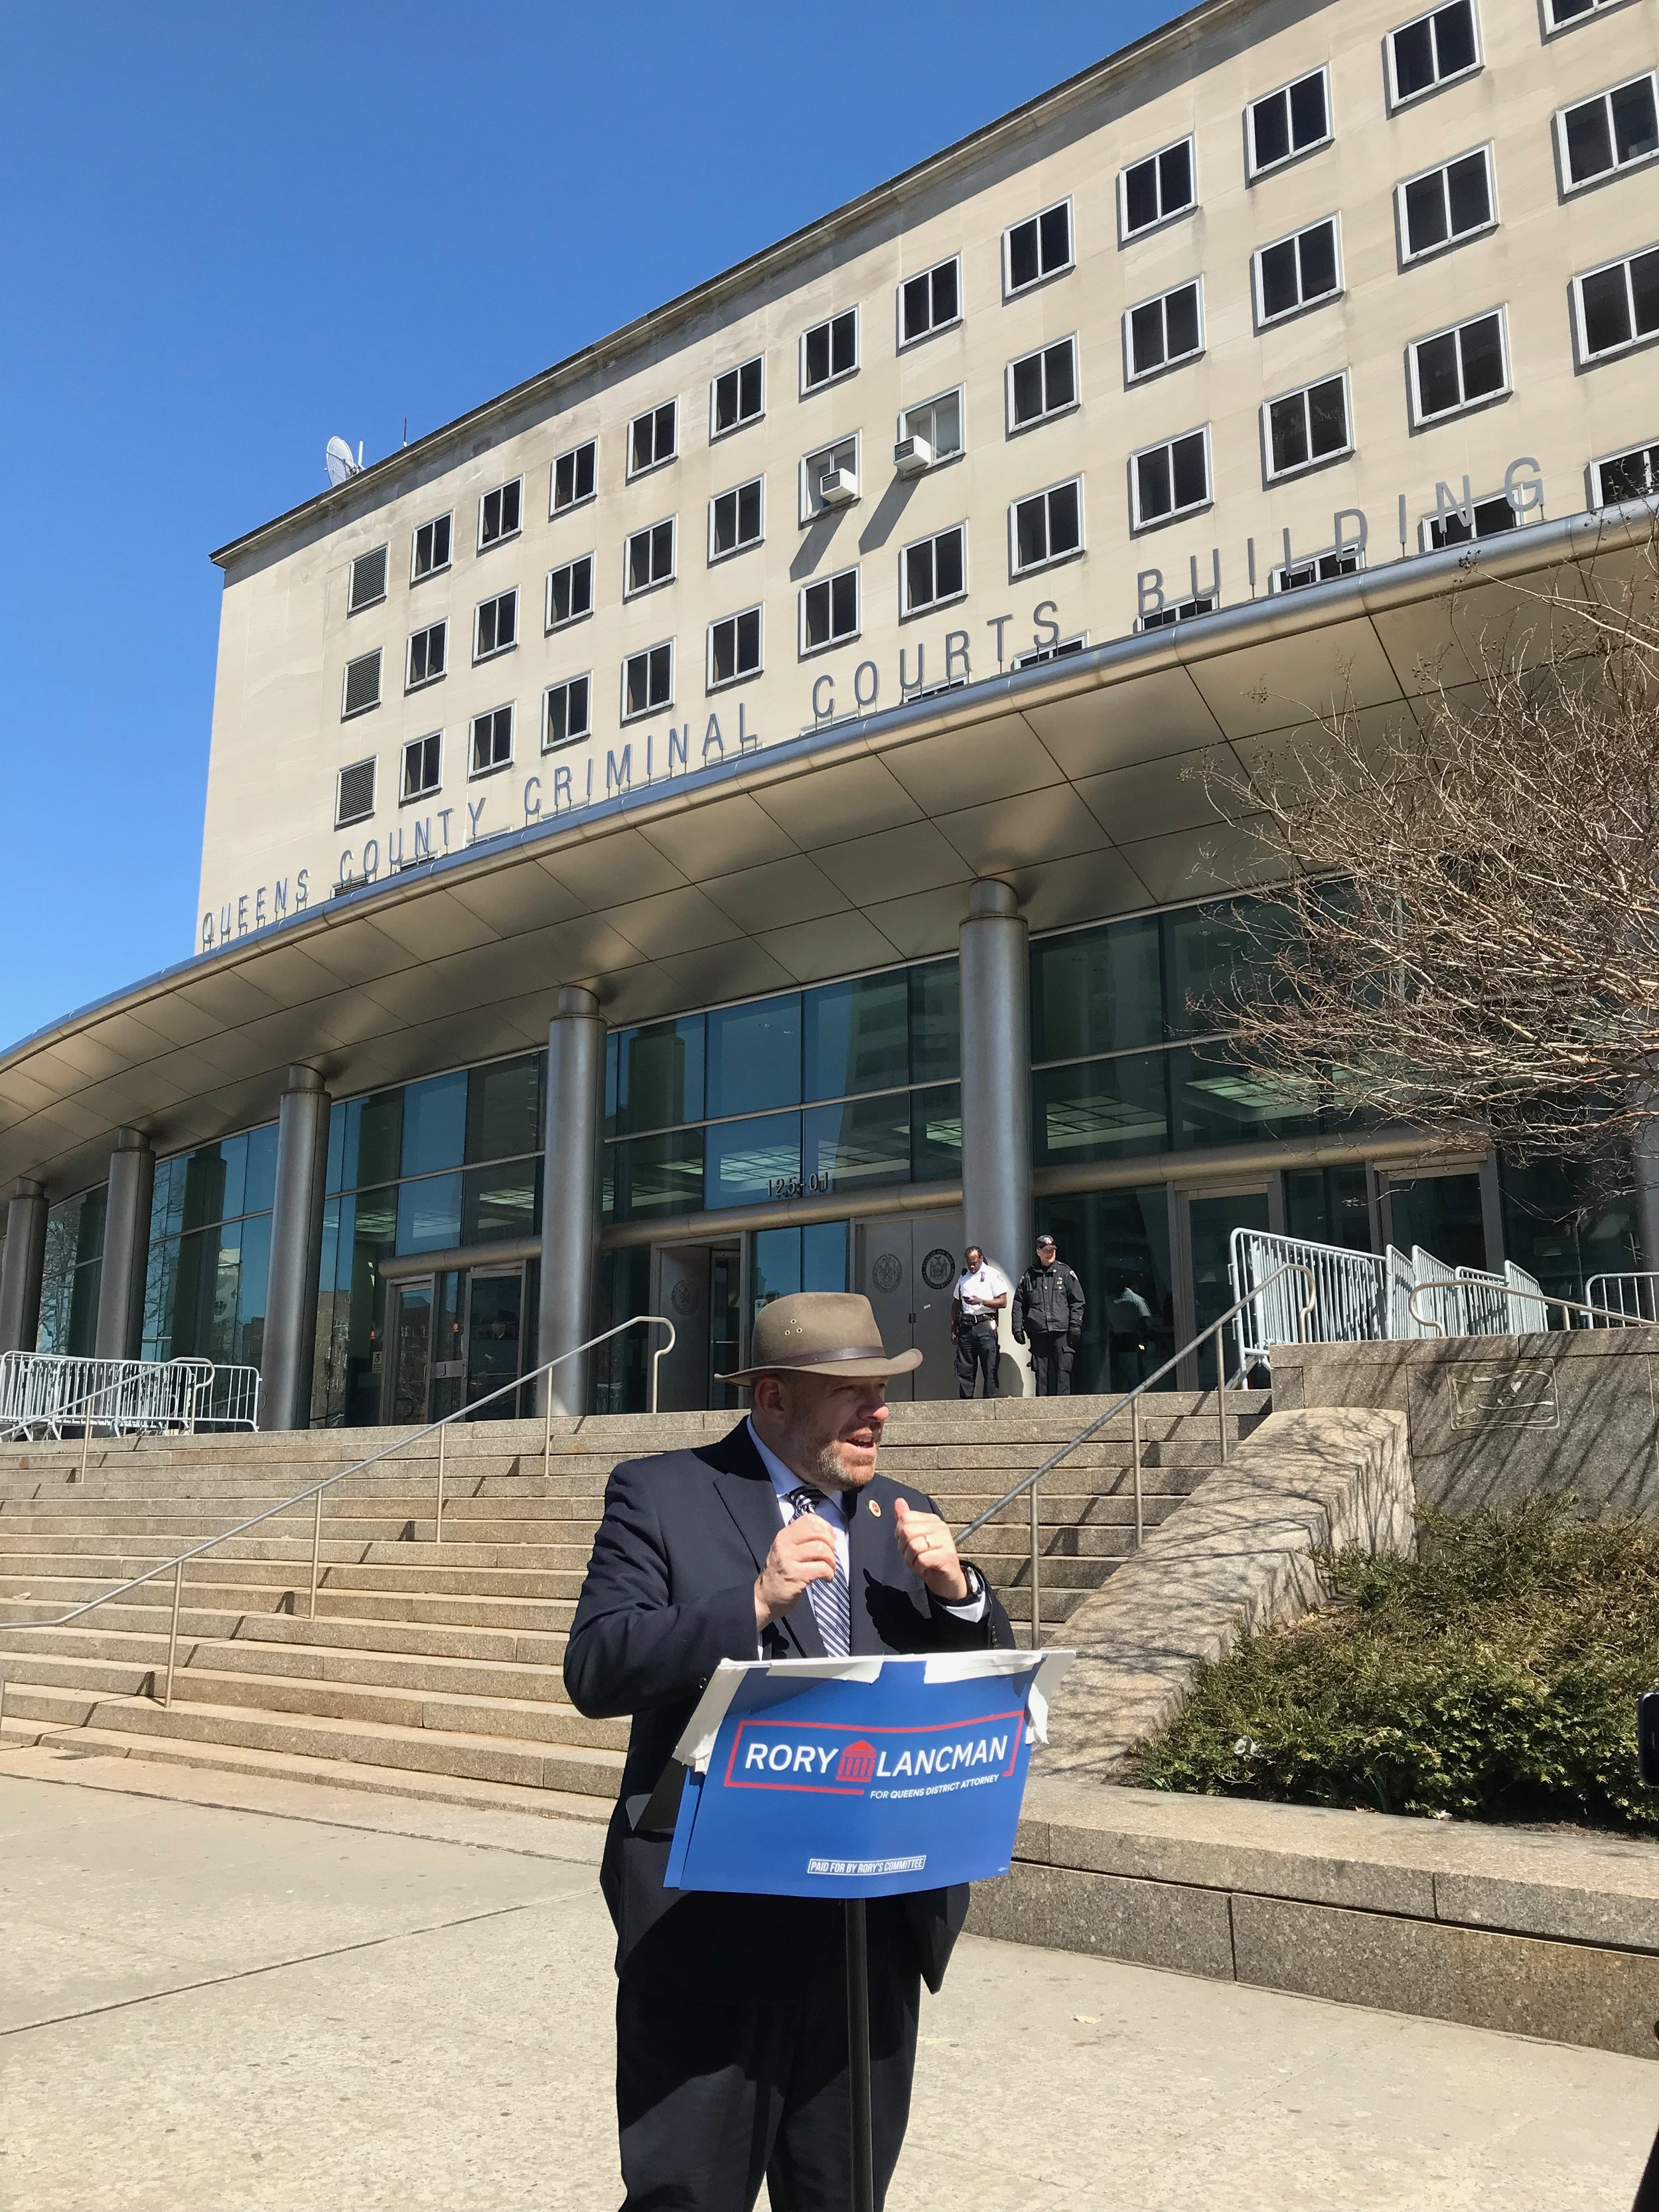 Lancman visited the Queens Criminal Courthouse to double down on his commitment to ending cash bail in Queens if elected DA.  Eagle  photo by David Brand.